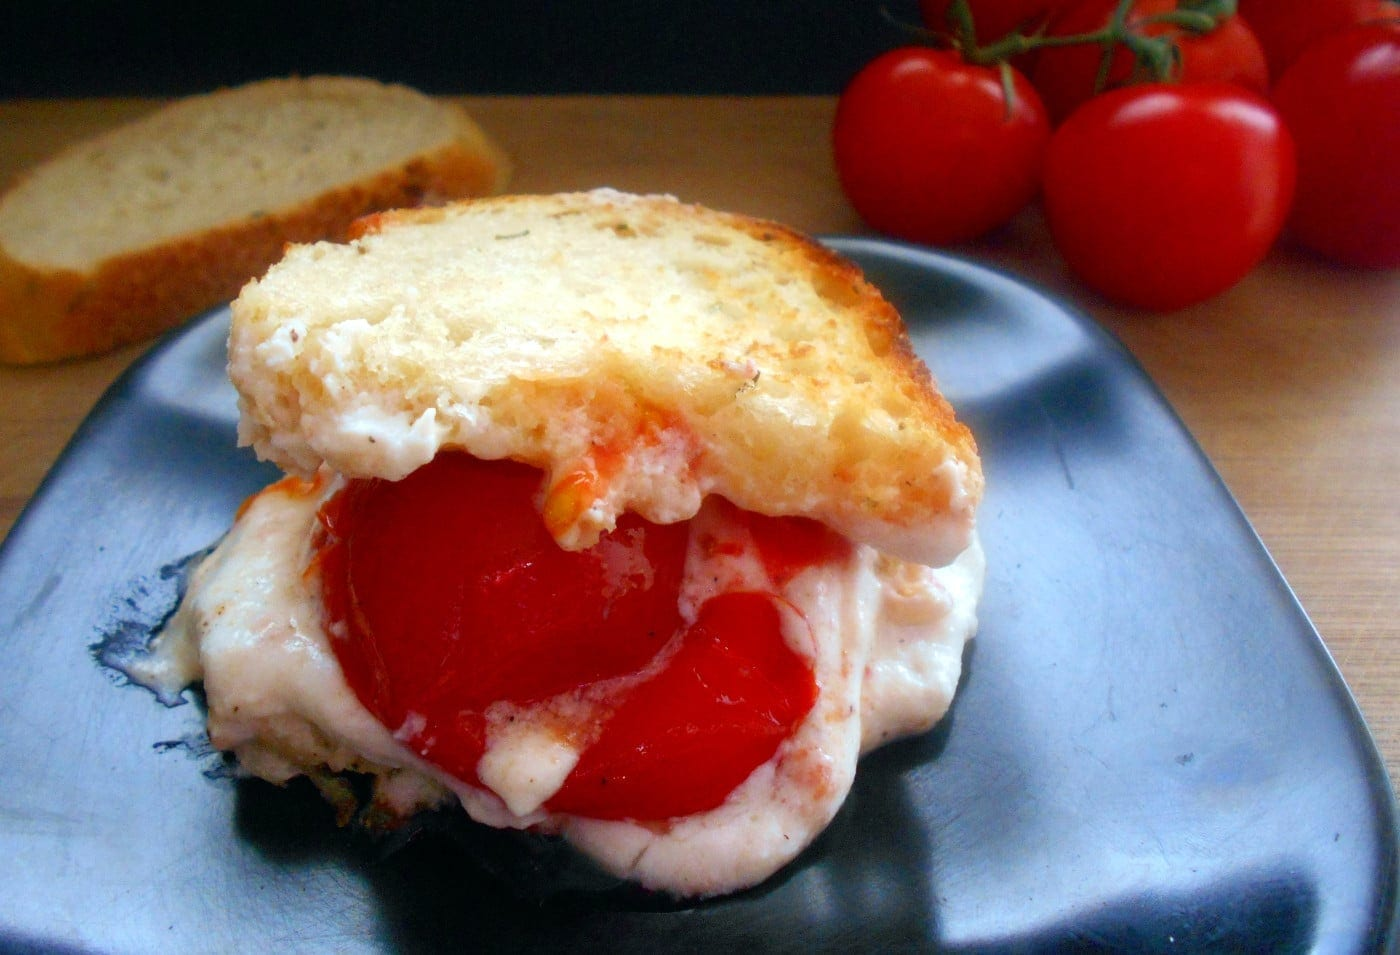 Front view of a grilled cheese sandwich with ricotta and roasted campari tomatoes - grilled cheese sandwich